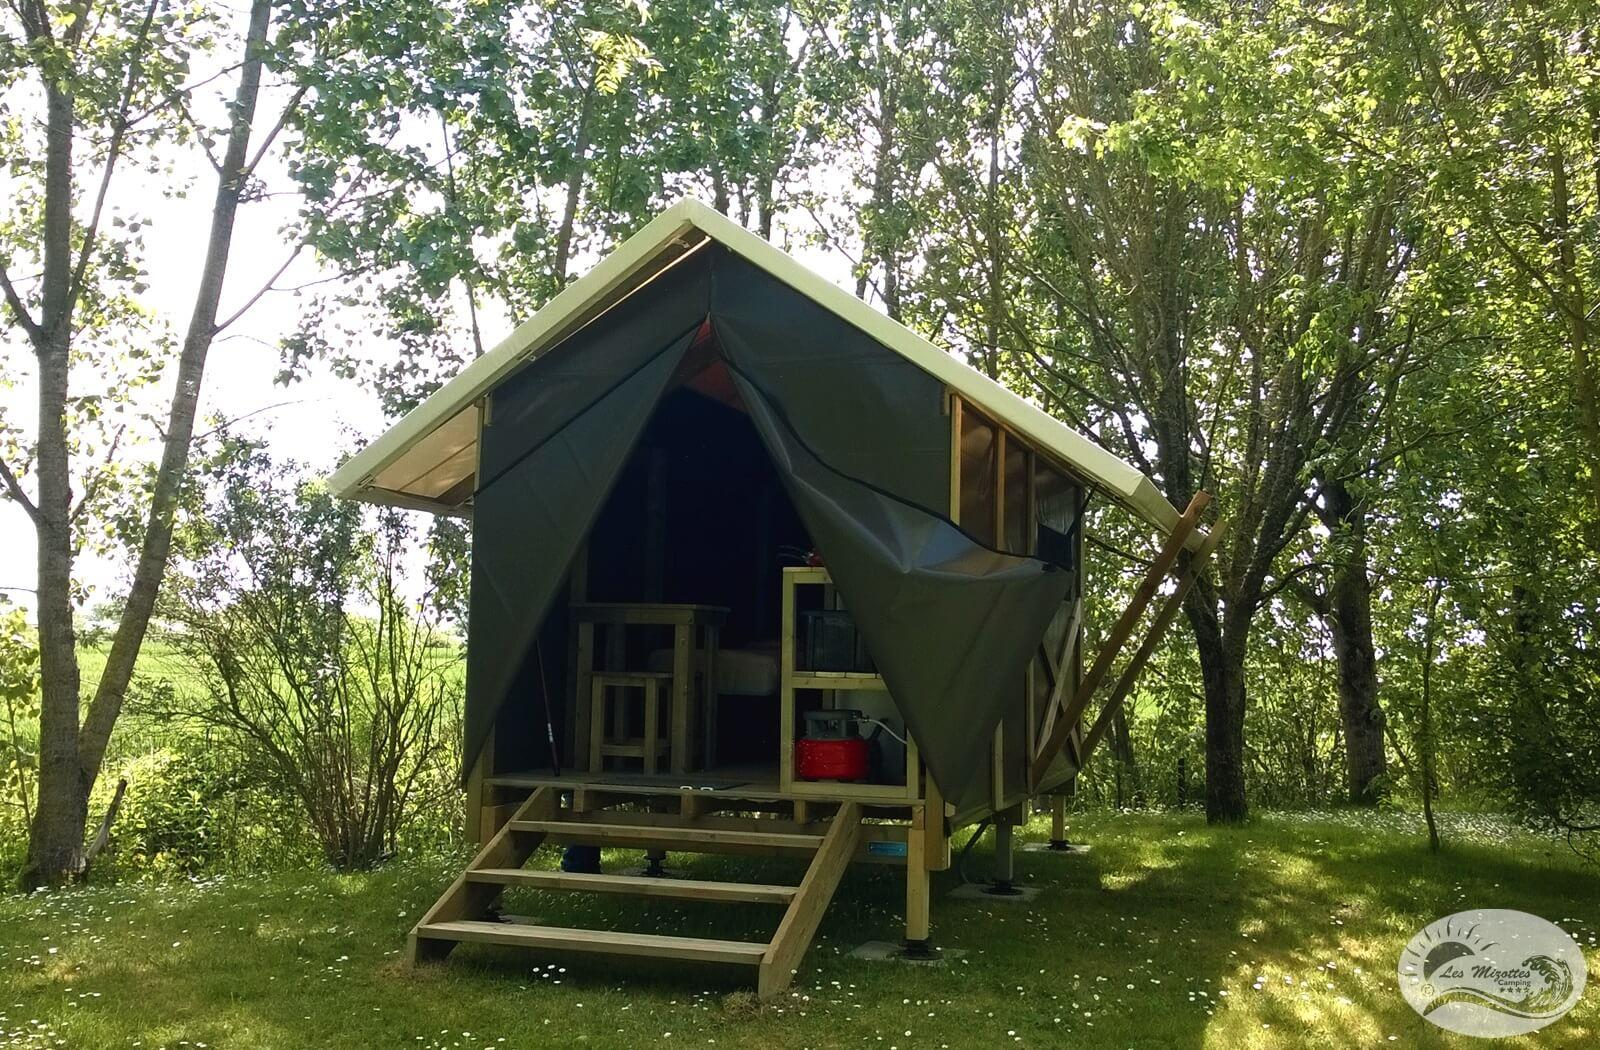 Huuraccommodaties - Lodg'yssée 1 Kamers 7 M² < 7 Years - Camping Les Mizottes